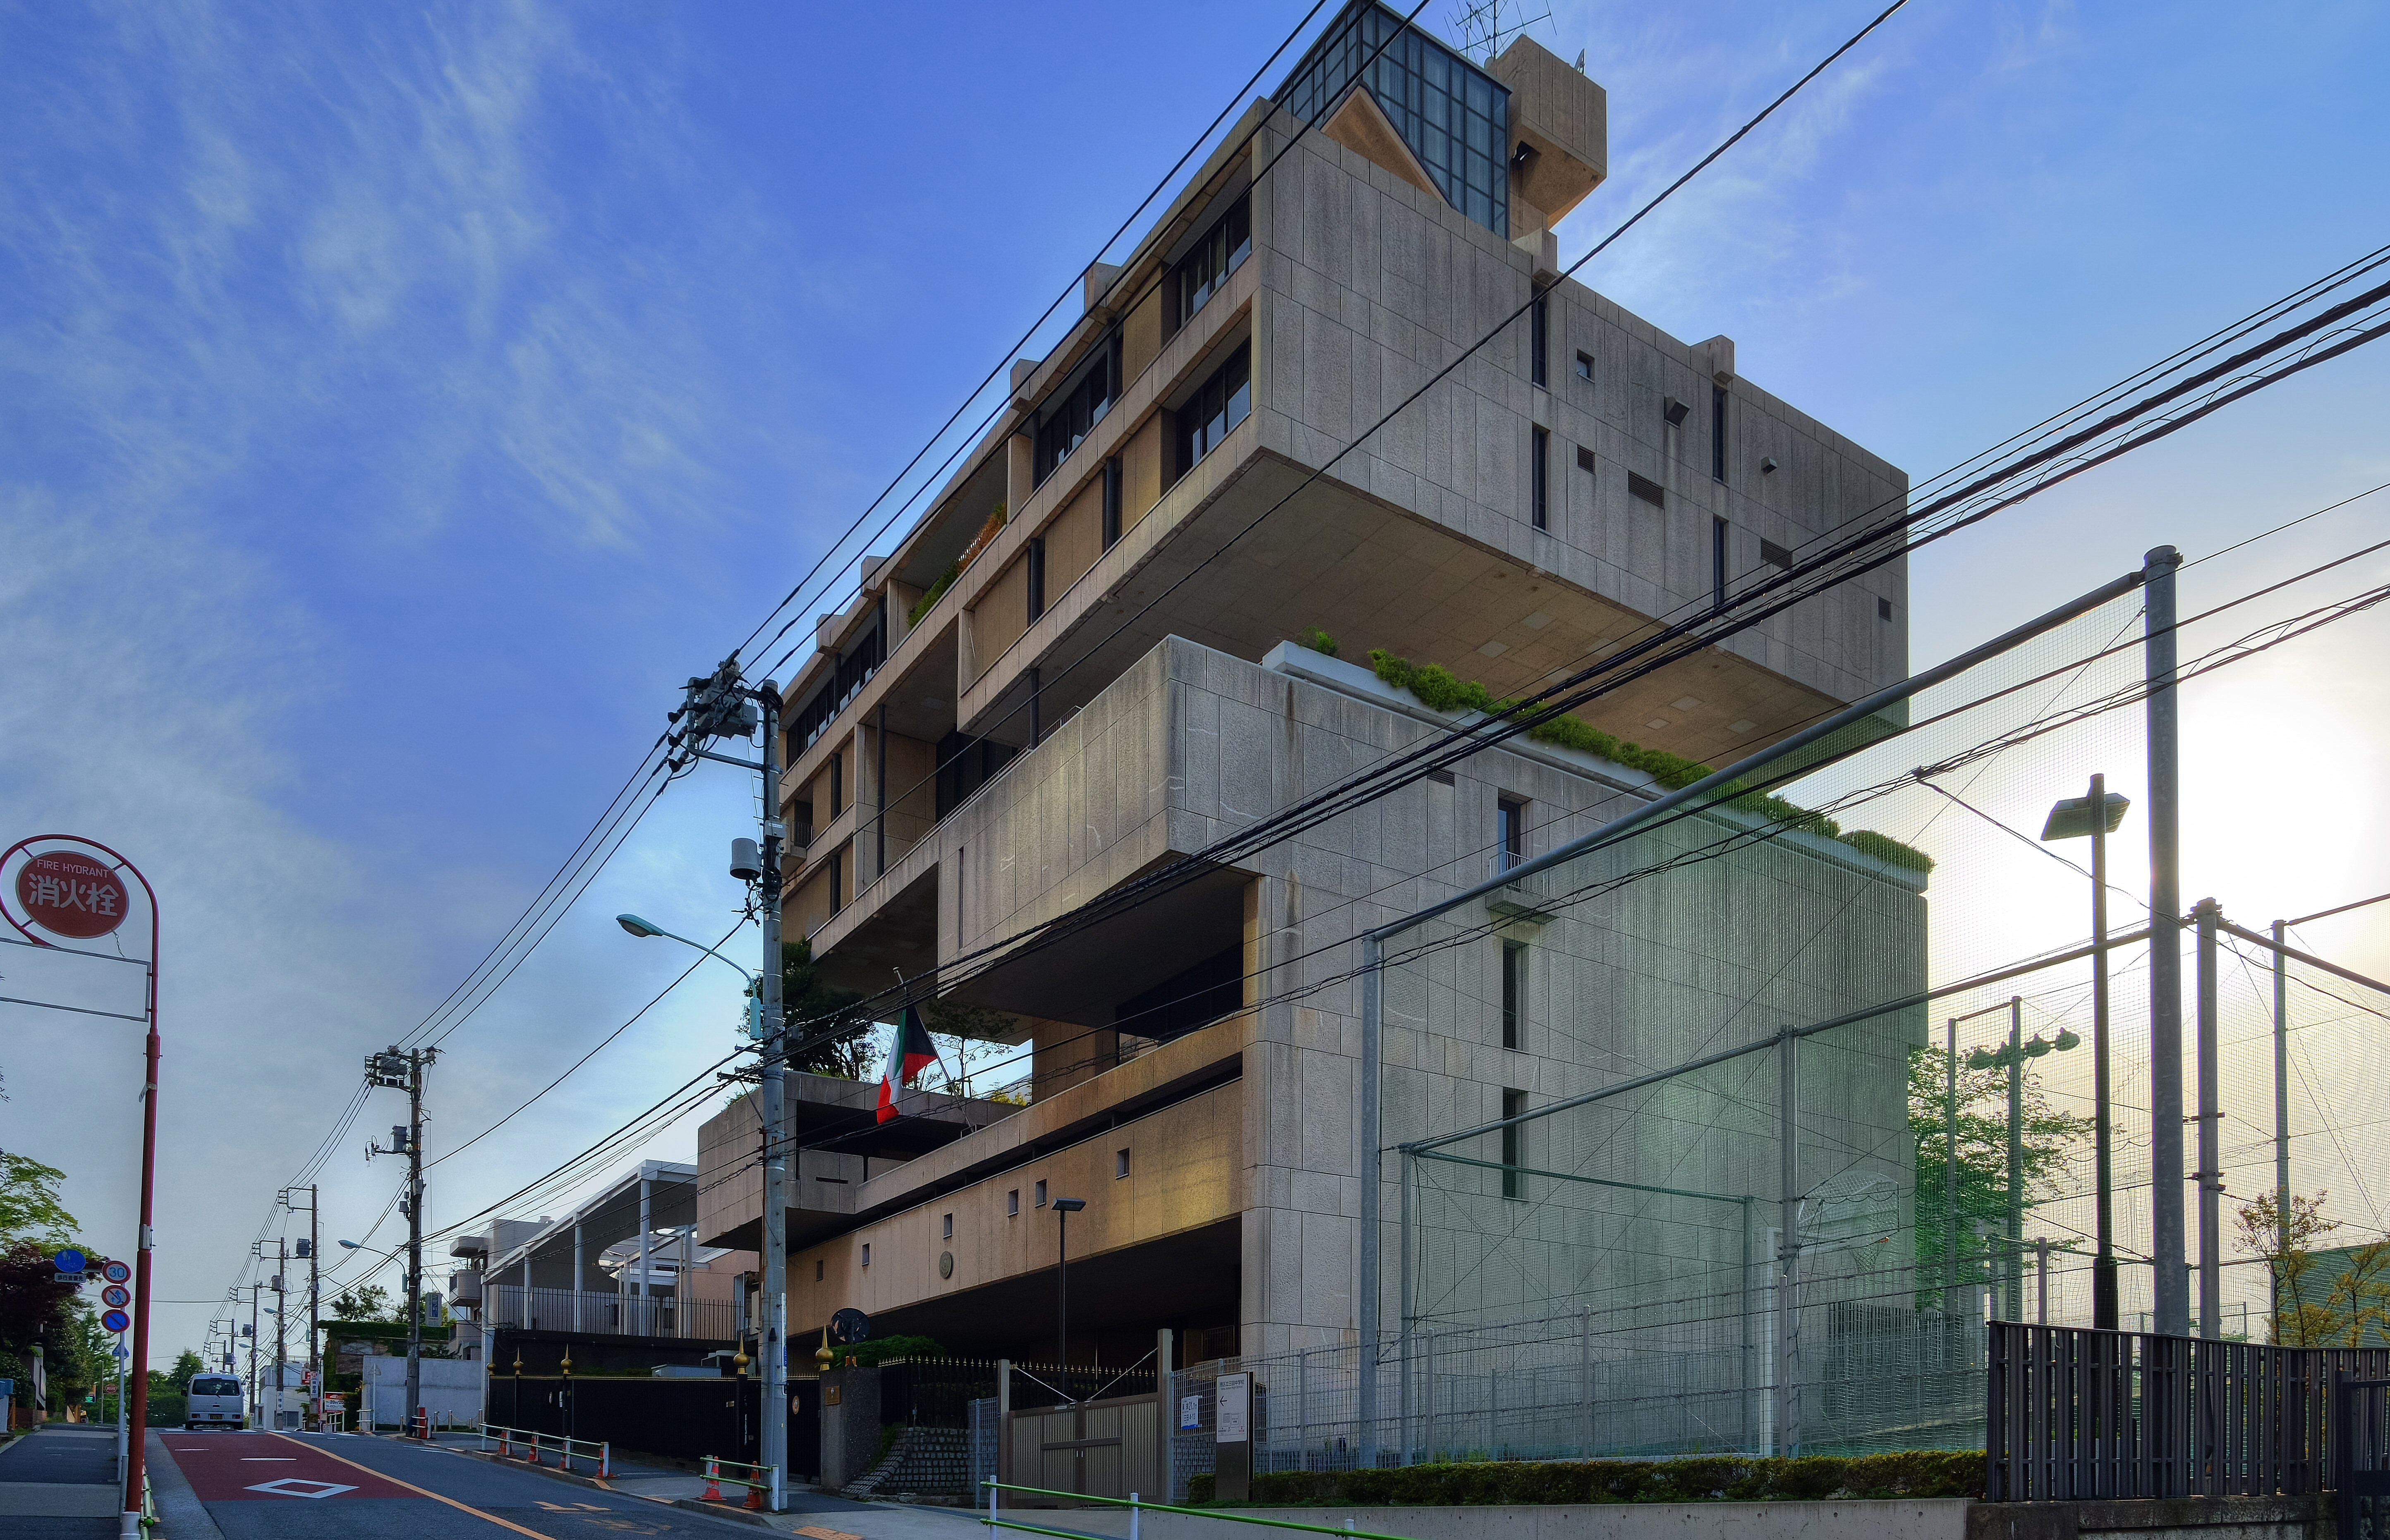 Block-like Metabolist architecture, The Embassy of the State of Kuwait, Tokyo, Japan